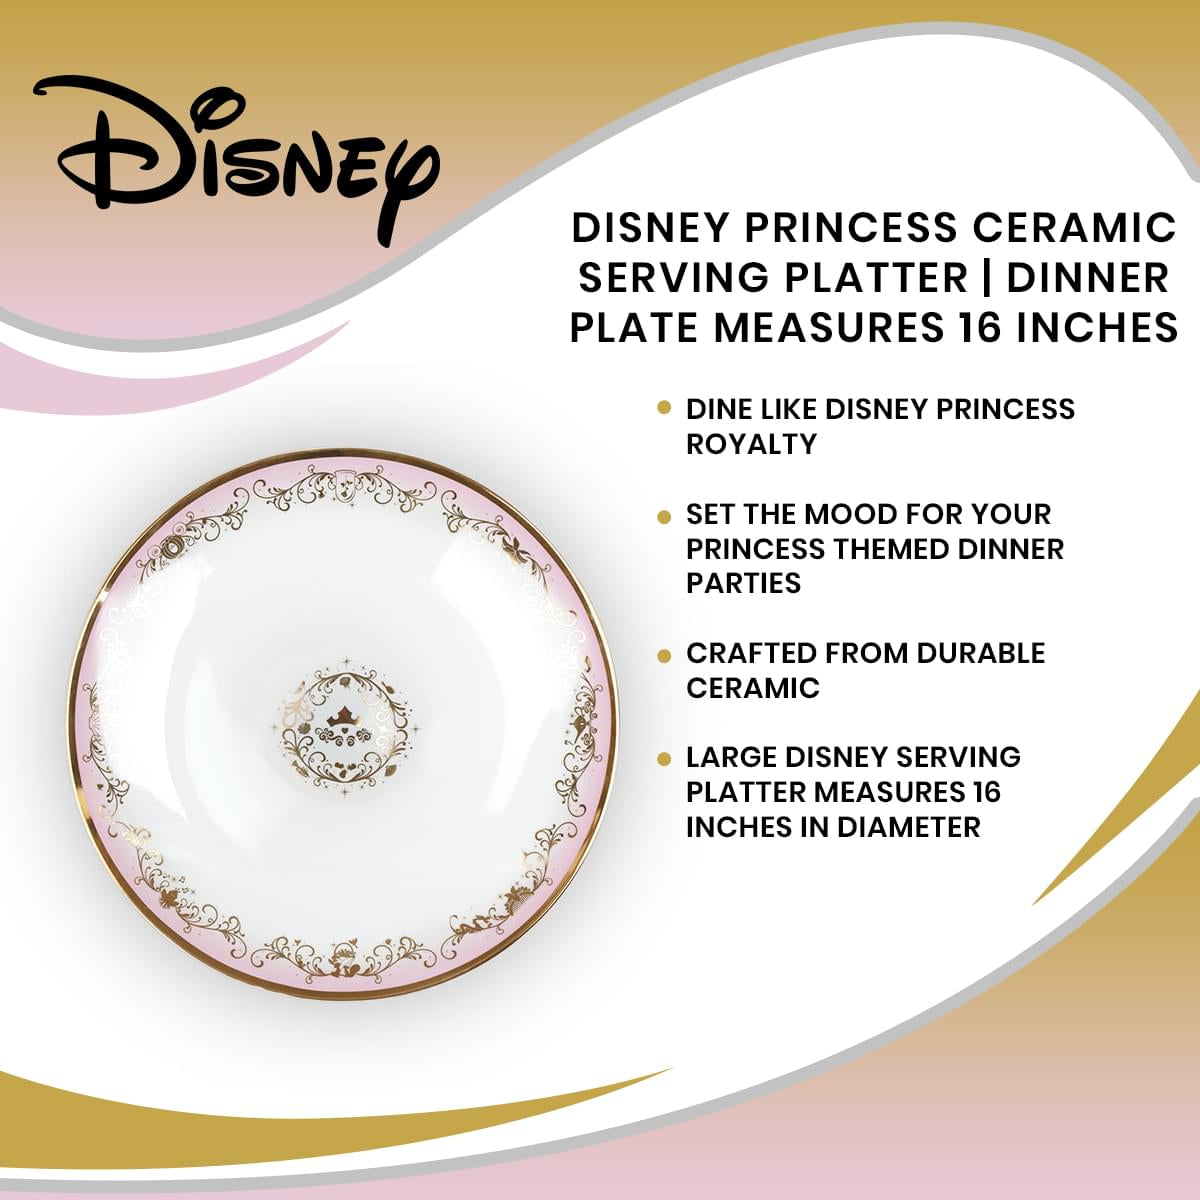 Disney Princess Ceramic Serving Platter | Plate Measures 16 Inches